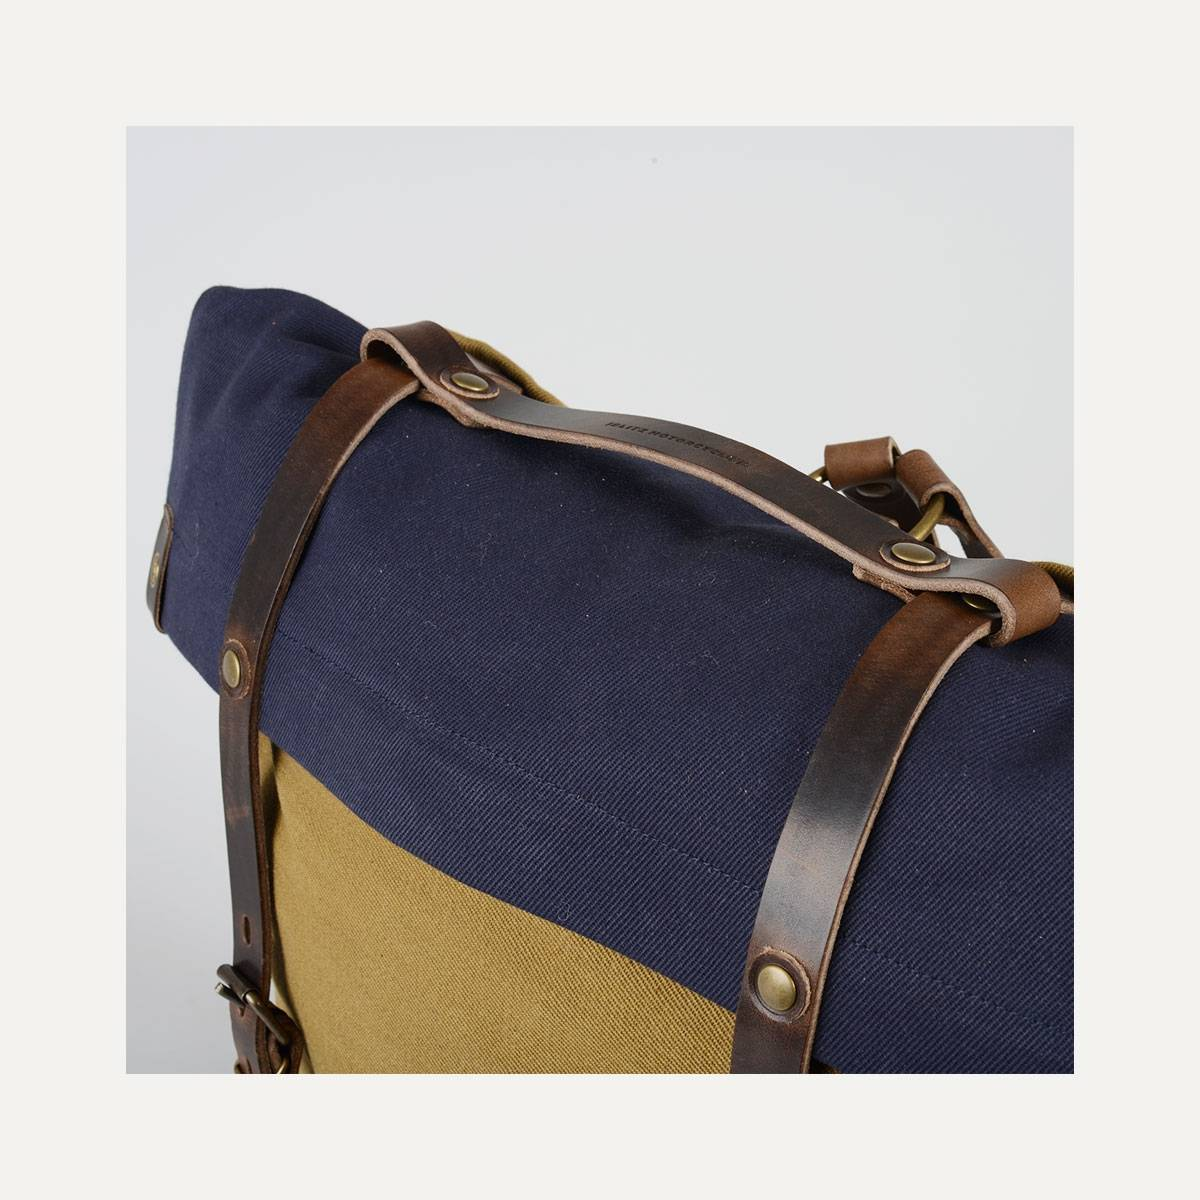 Blitz Motorcycles Scout Backpack - Navy/Camel (image n°9)